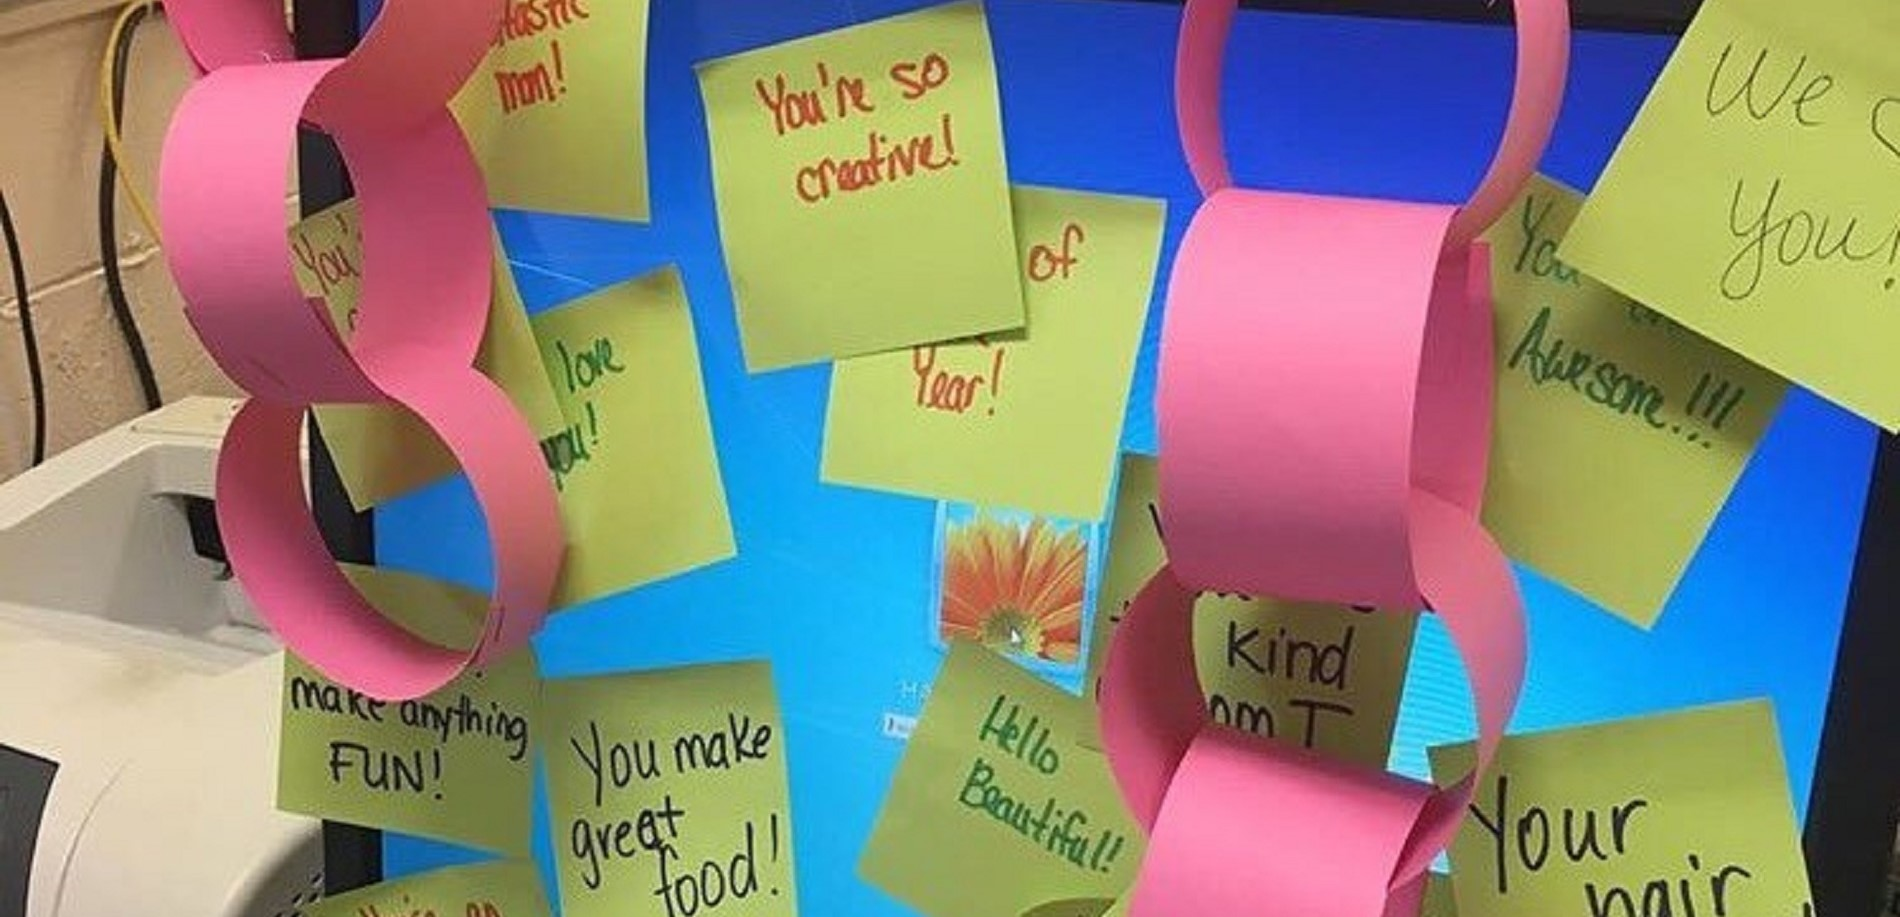 Lincoln Trail Elementary School students left positives messages for their teachers.